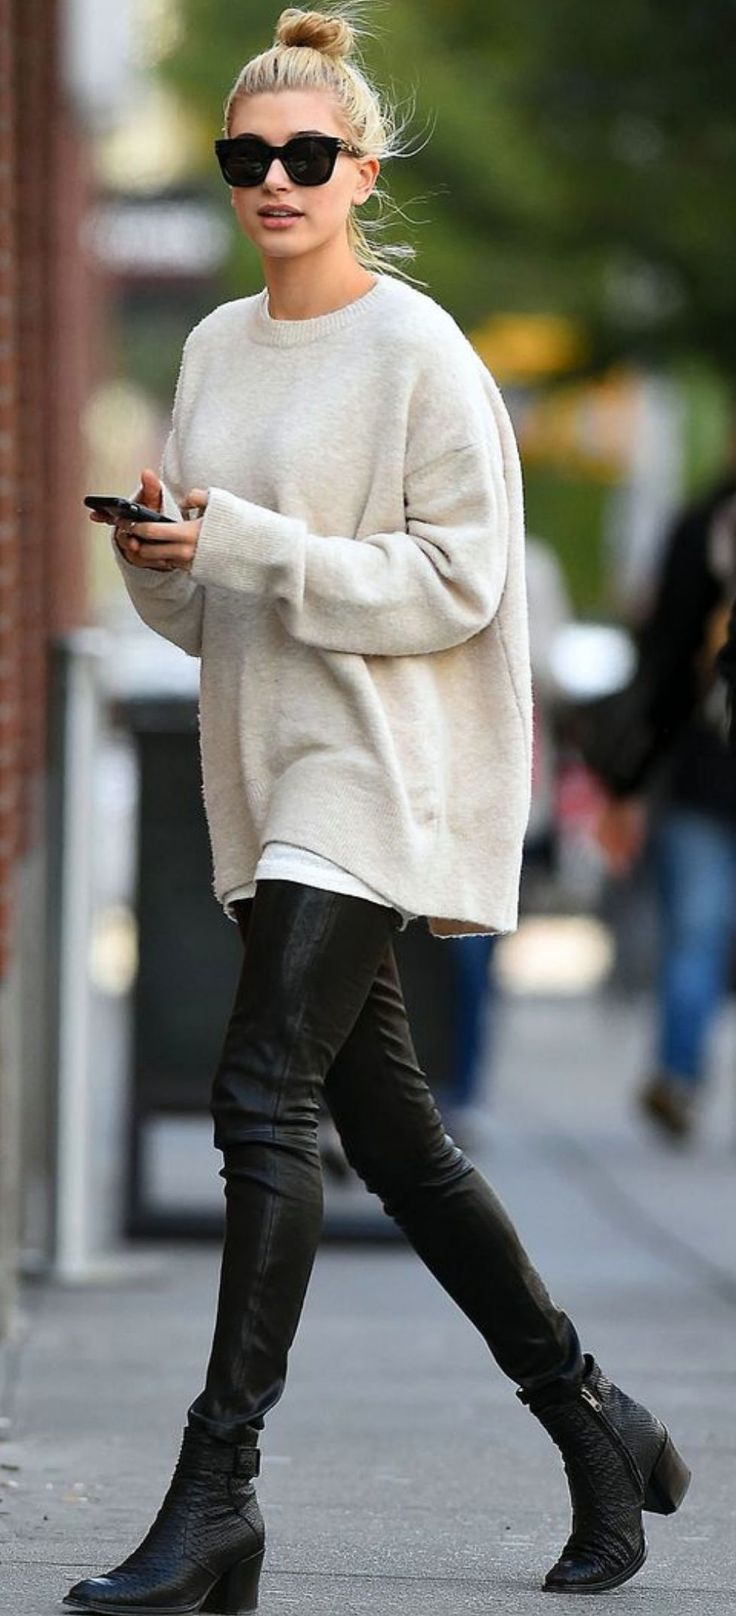 Oversized Sweater Streetstyle